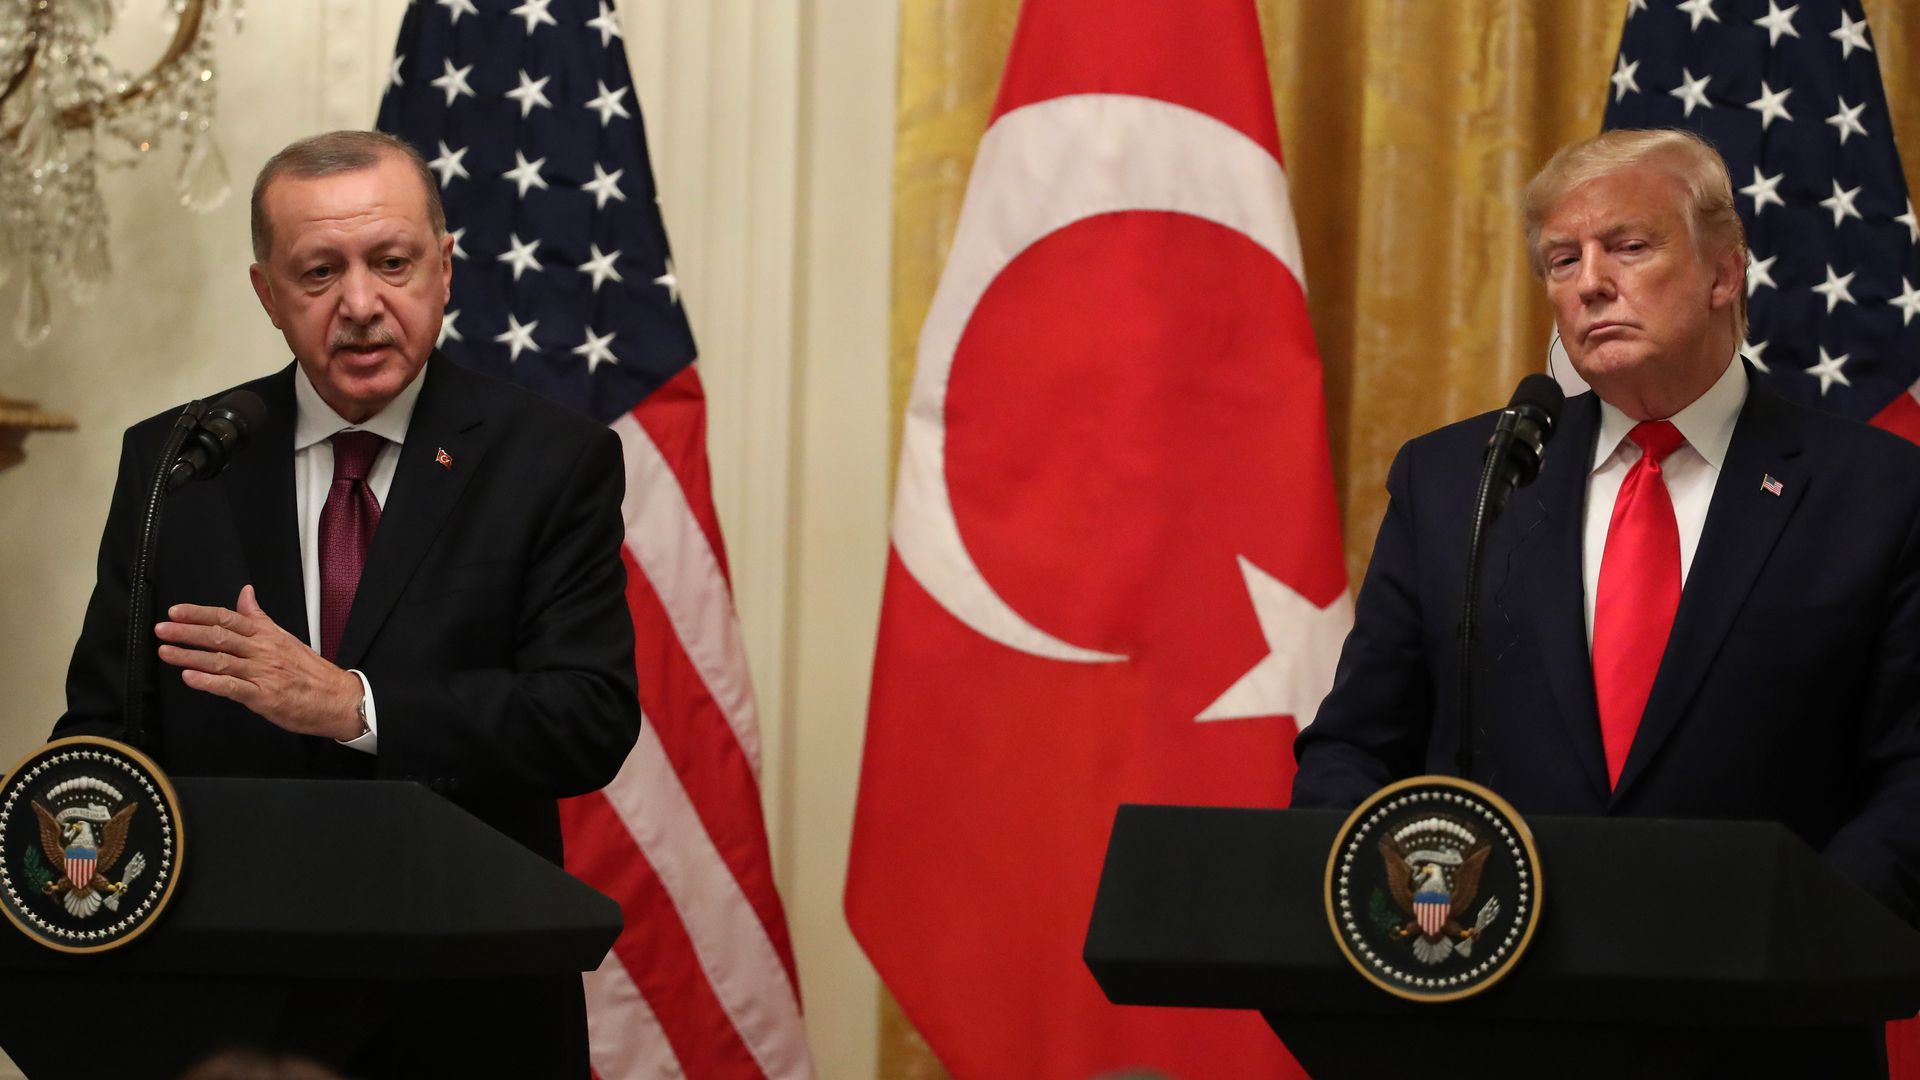 Turkish President Recep Tayyip Erdogan speaks during a press conference with President Trump